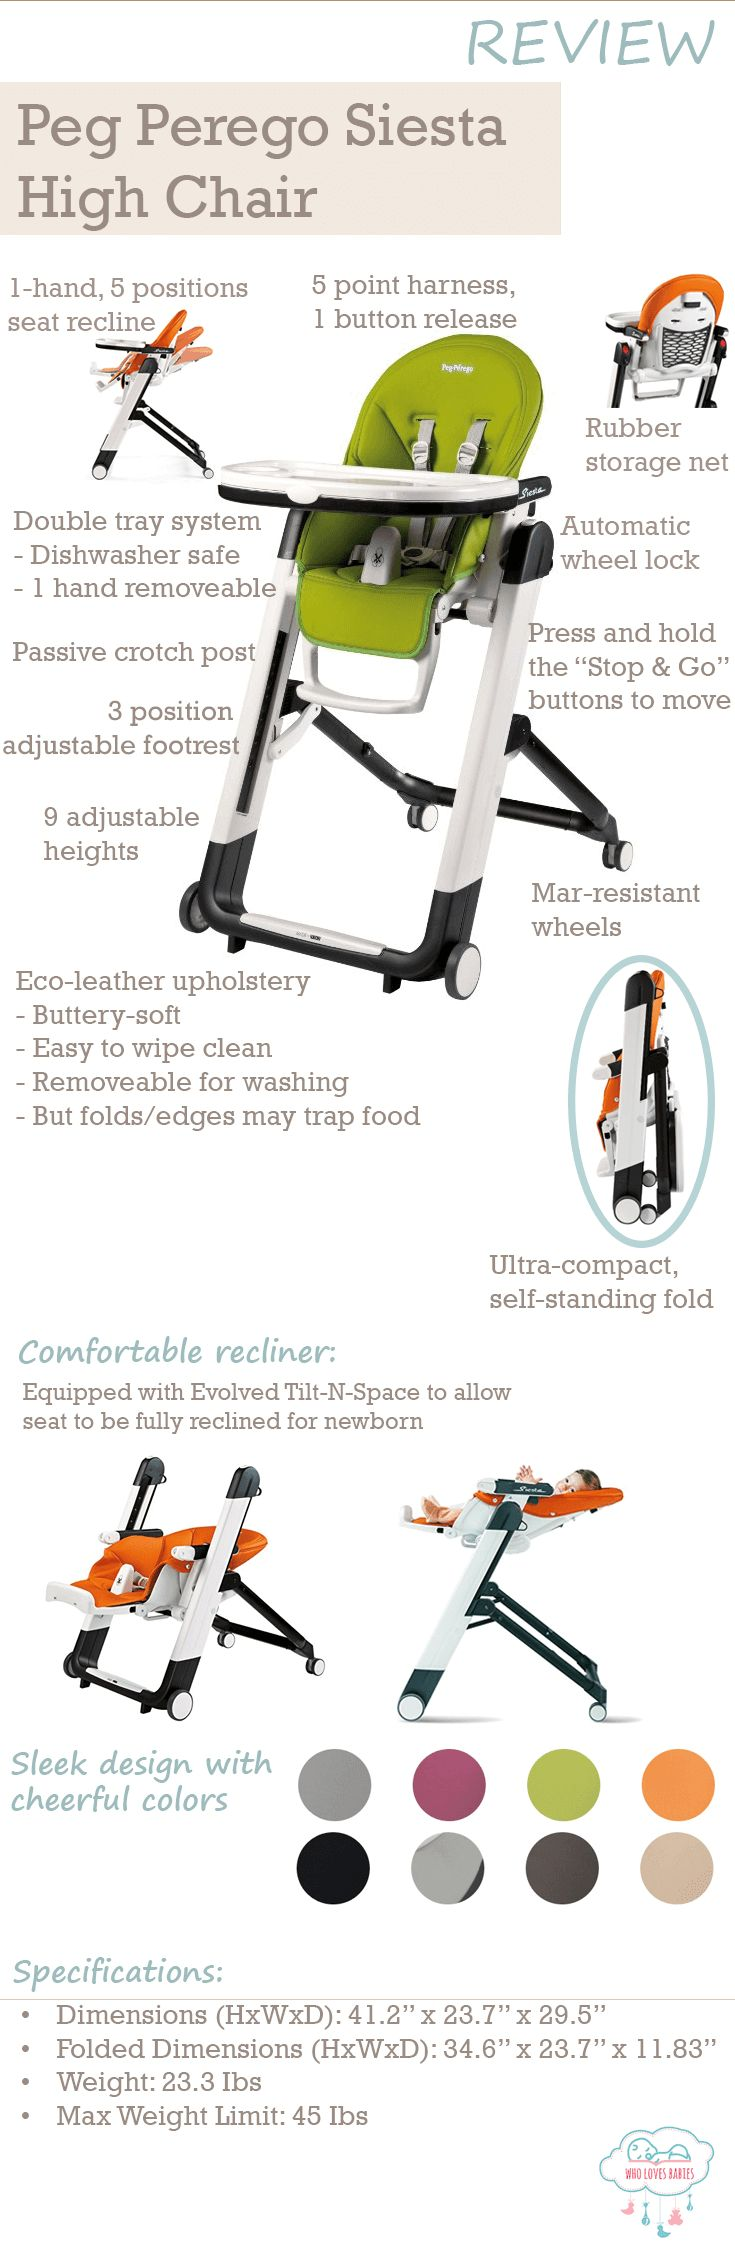 Peg Perego Siesta High Chair Review - Are you looking for a baby high chair? If space constraint is a concern, you'll like this as it is ultra-compact and self-standing when folded. It is also highly adjustable with 5 reclining seat positions, 9 height positions and 3 footrest positions. Though it's relatively simple to use, it is still full of buttons and triggers. Read on for more Pros and Cons of the Peg Perego Siesta High Chair to decide if this is the right one for you and your baby.